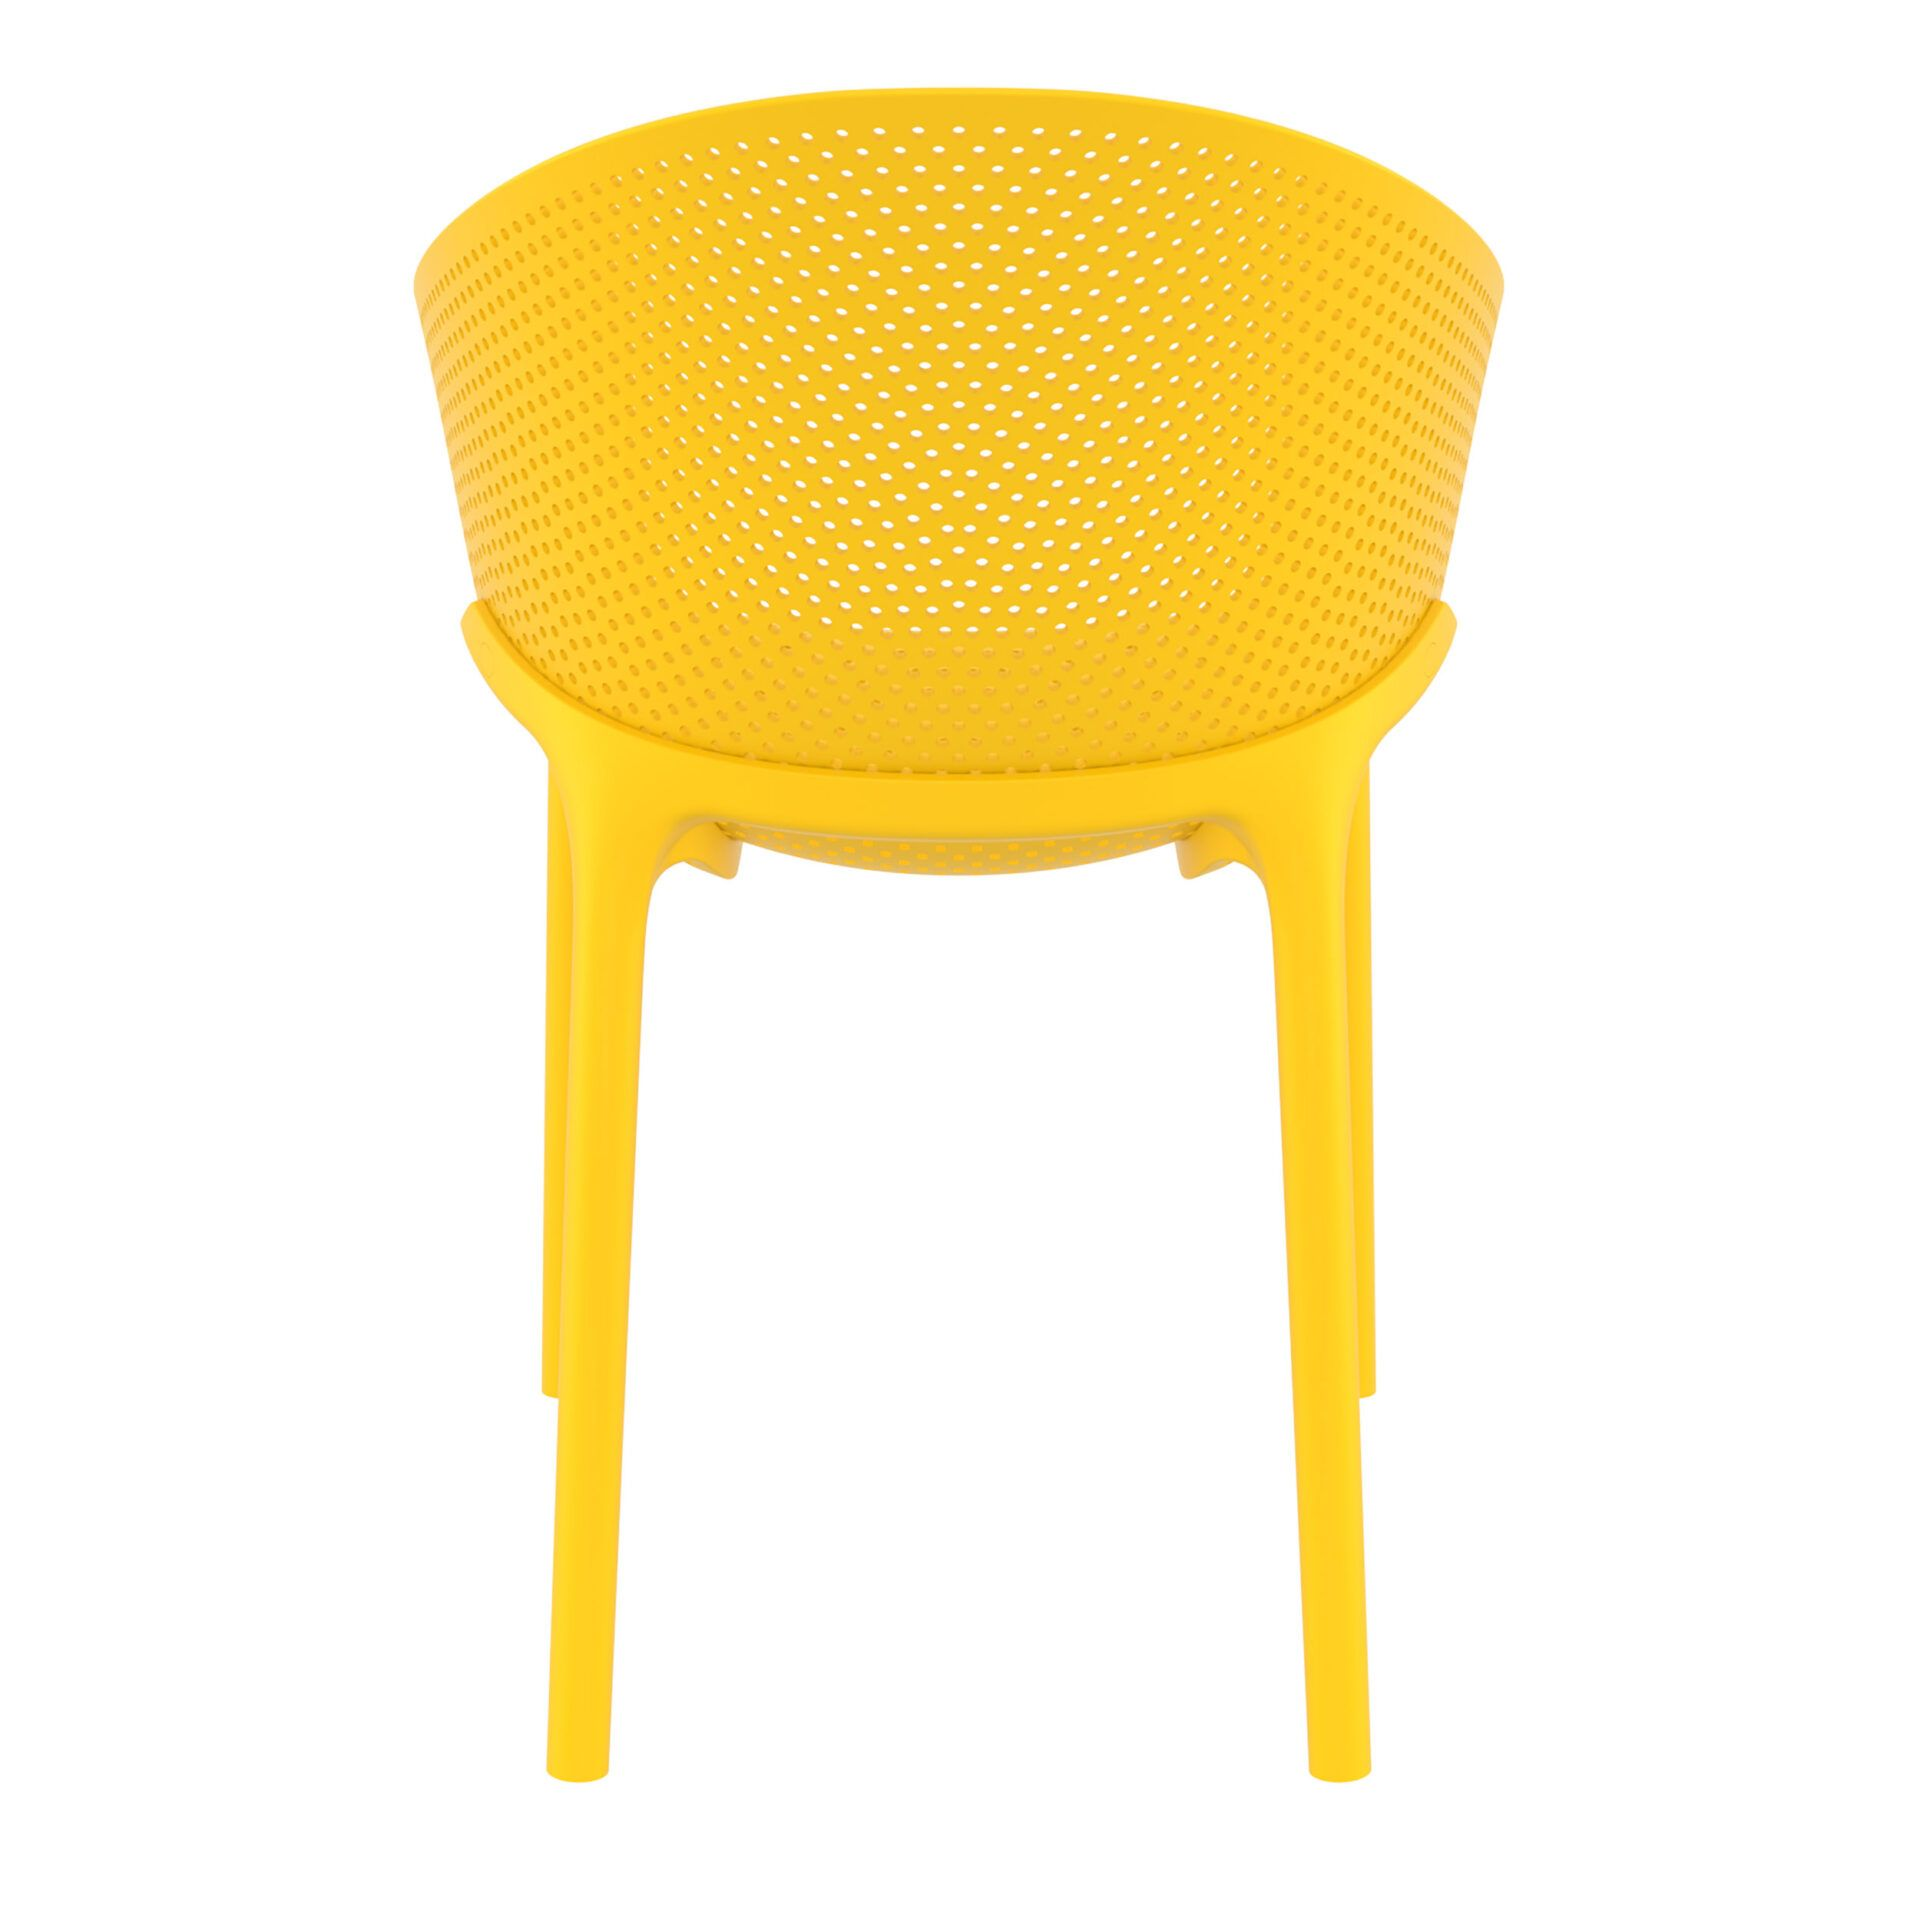 outdoor seating polypropylene sky chair yellow back